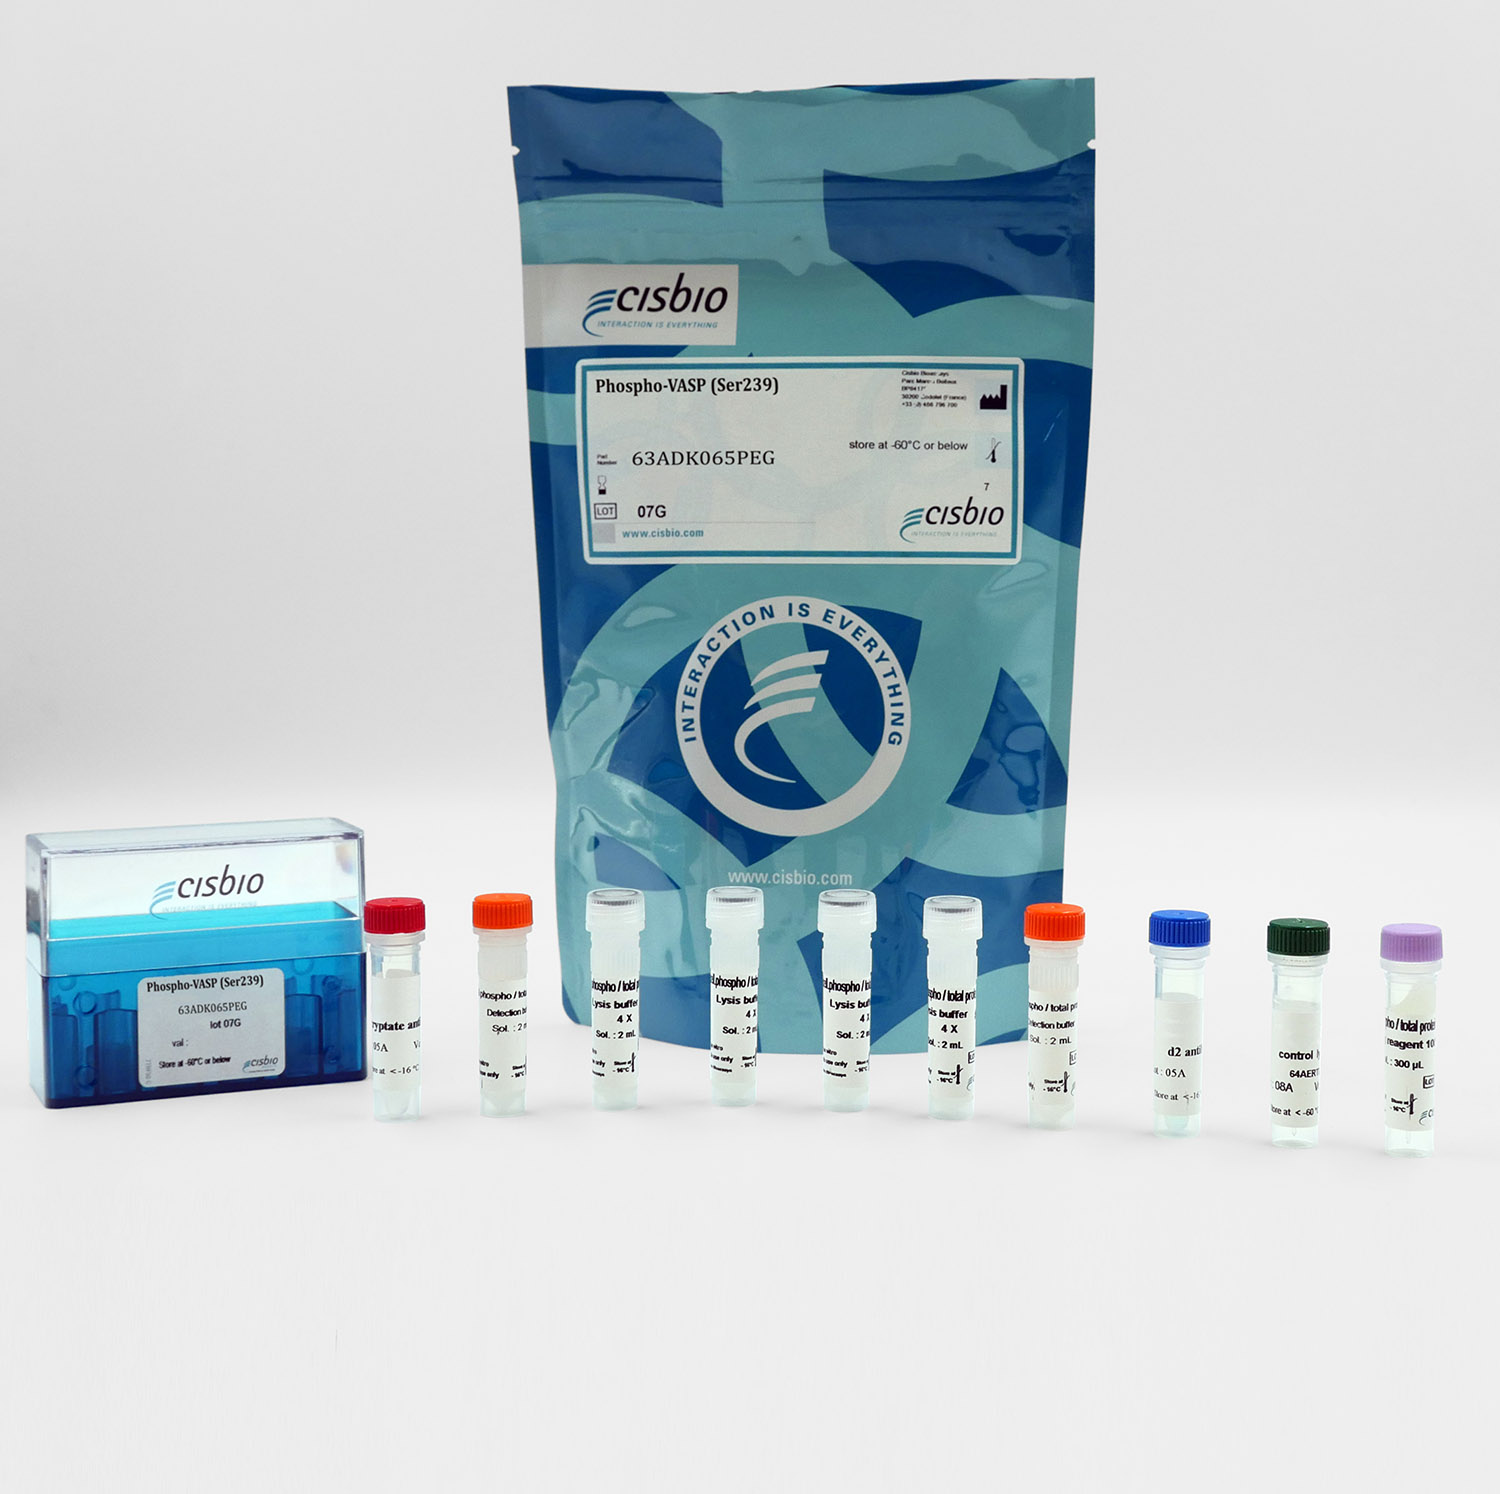 Phospho-VASP (Ser239) cellular kit